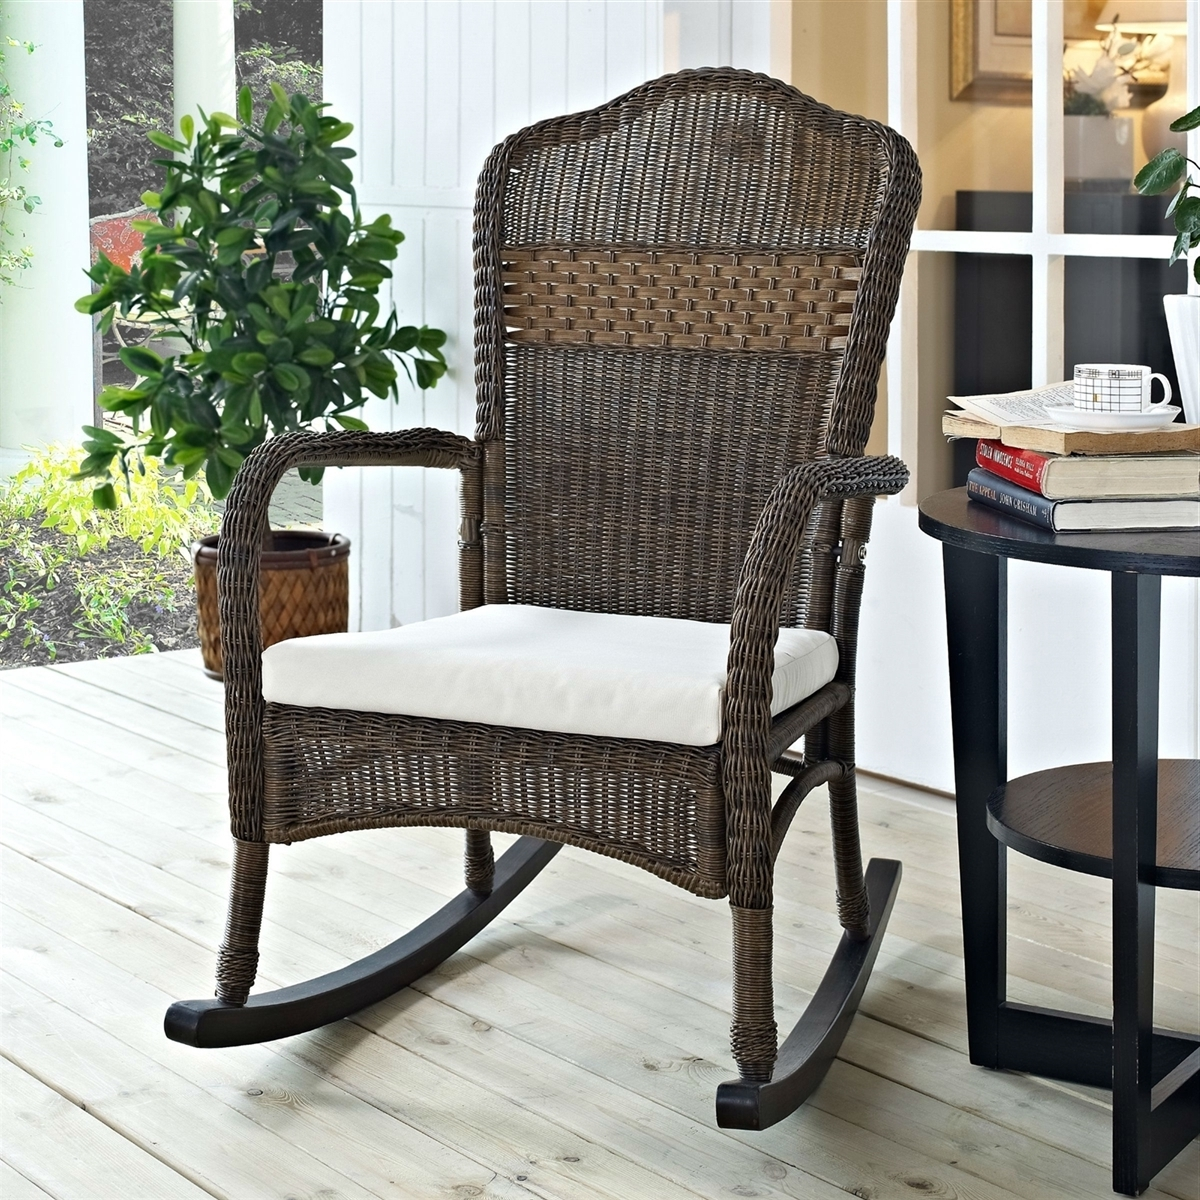 Patio Rocking Chairs With Cushions With Most Recent Wicker Patio Furniture Rocking Chair Mocha With Beige Cushion (View 15 of 20)